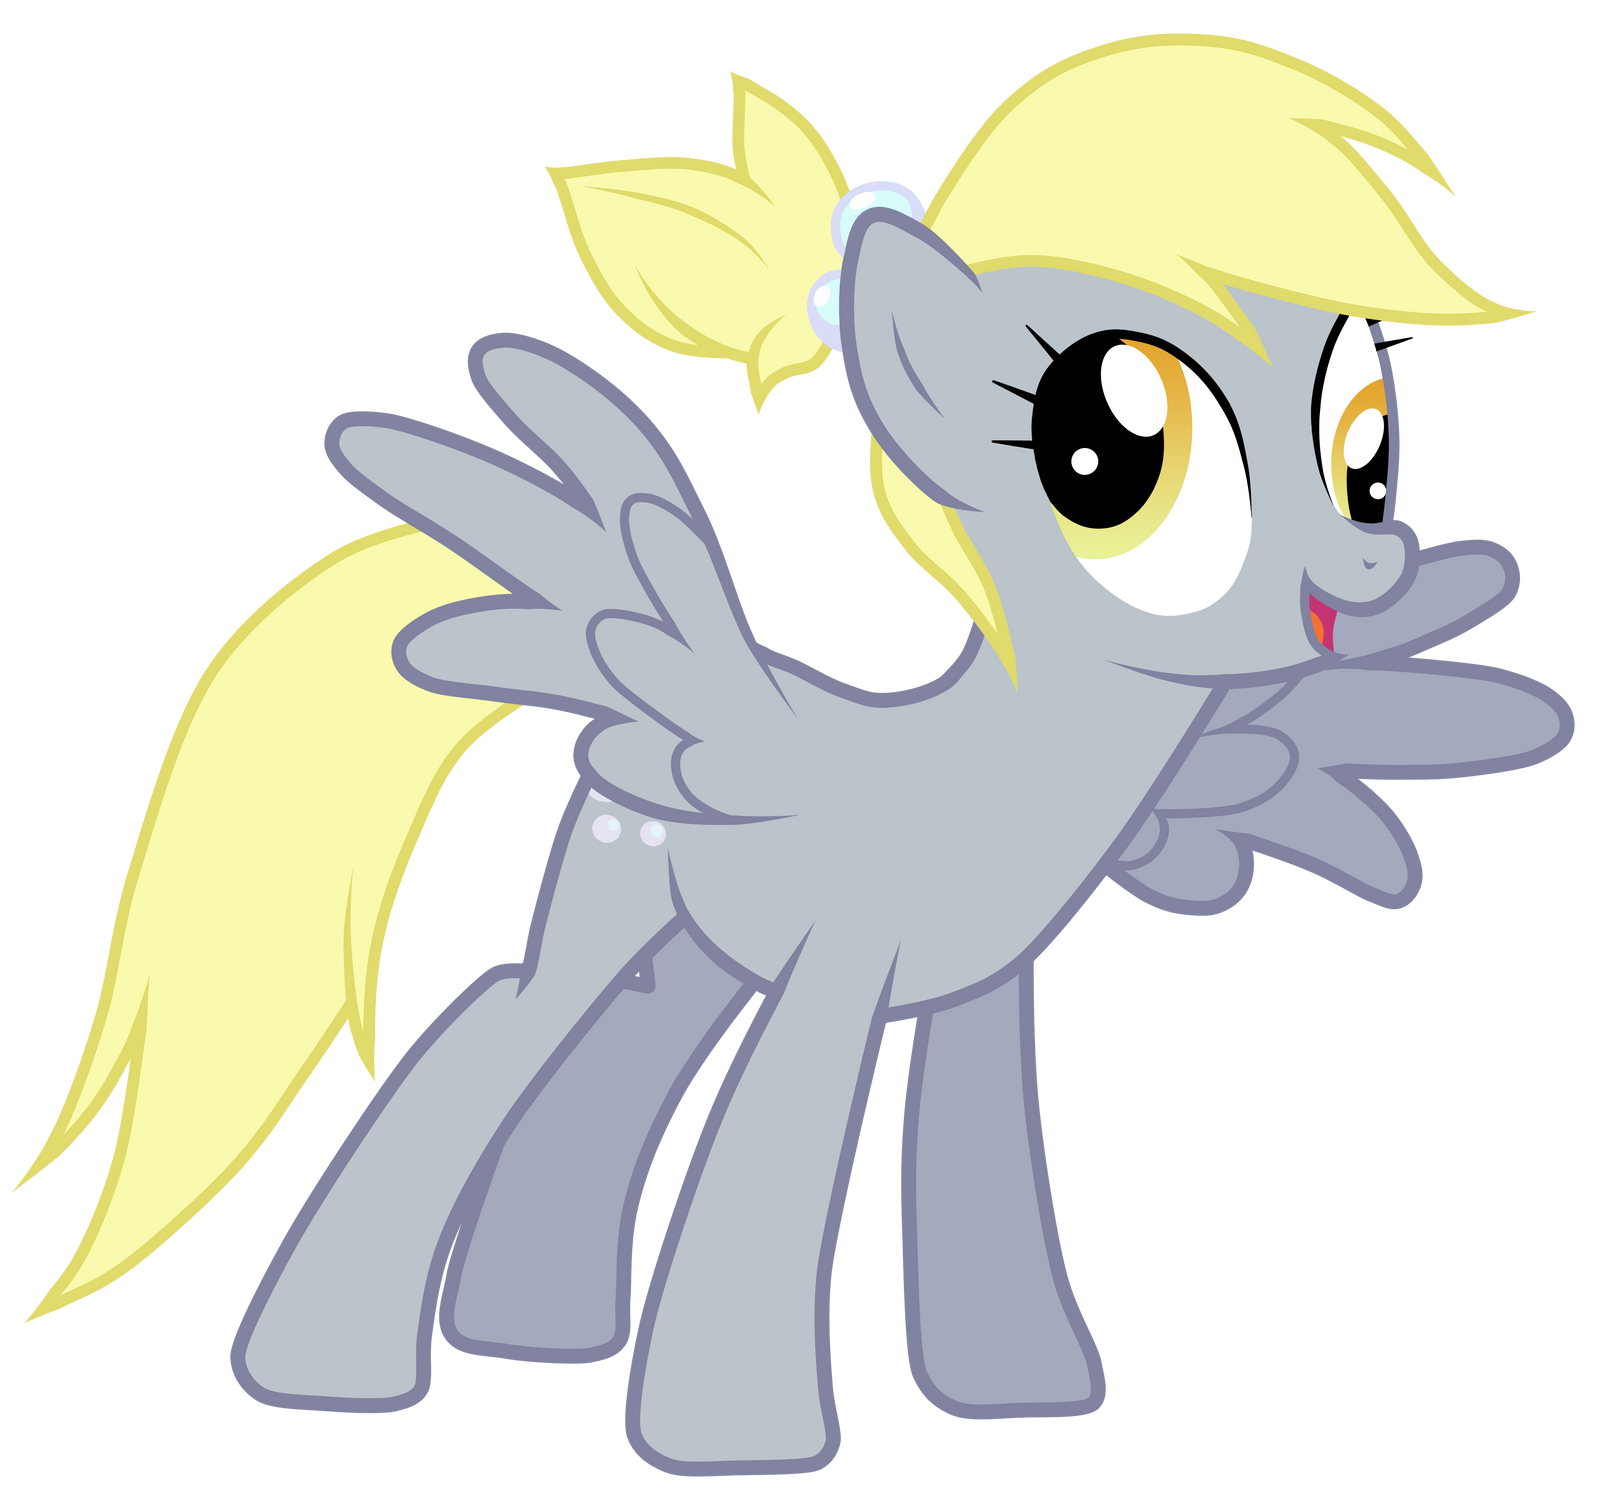 http://fc06.deviantart.net/fs70/i/2012/159/8/b/derpy_with_a_ponytail_by_jennieoo-d52p72a.png